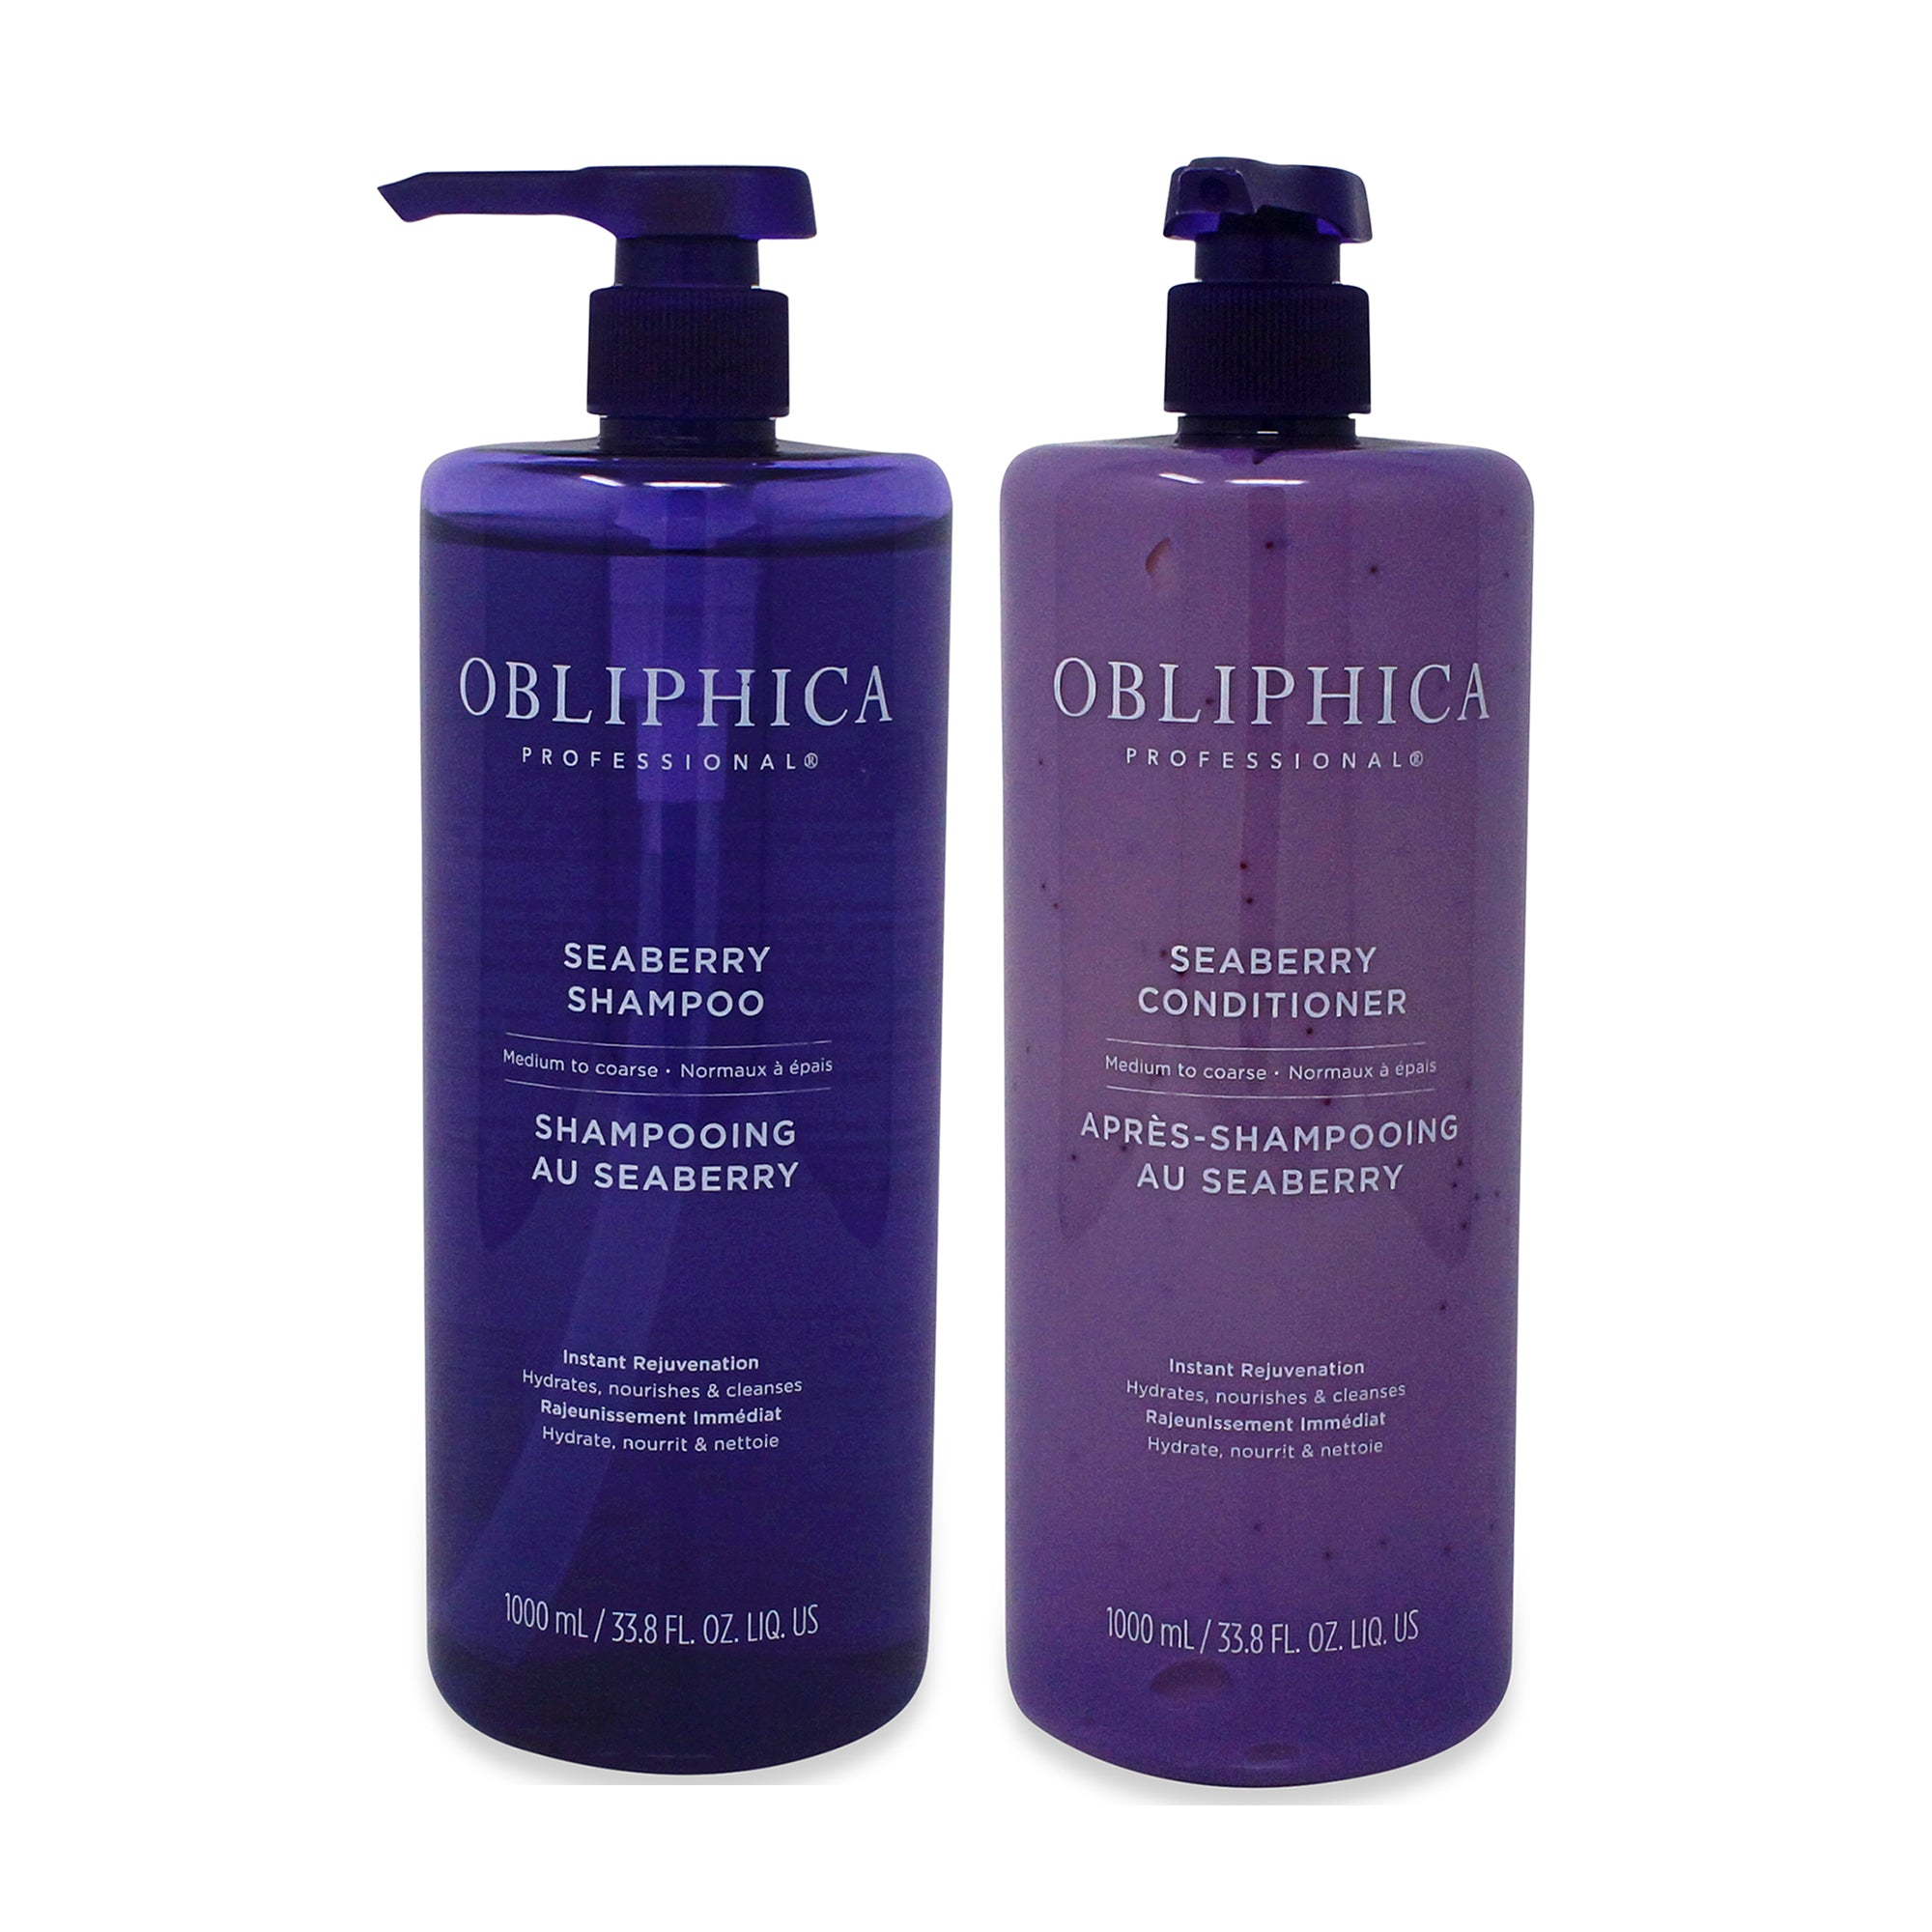 OBLIPHICA ~ SEARBERRY SHAMPOO 33.8 OZ AND CONDITOINER 33.8 OZ ~ MED/COARSE COMBO PACK